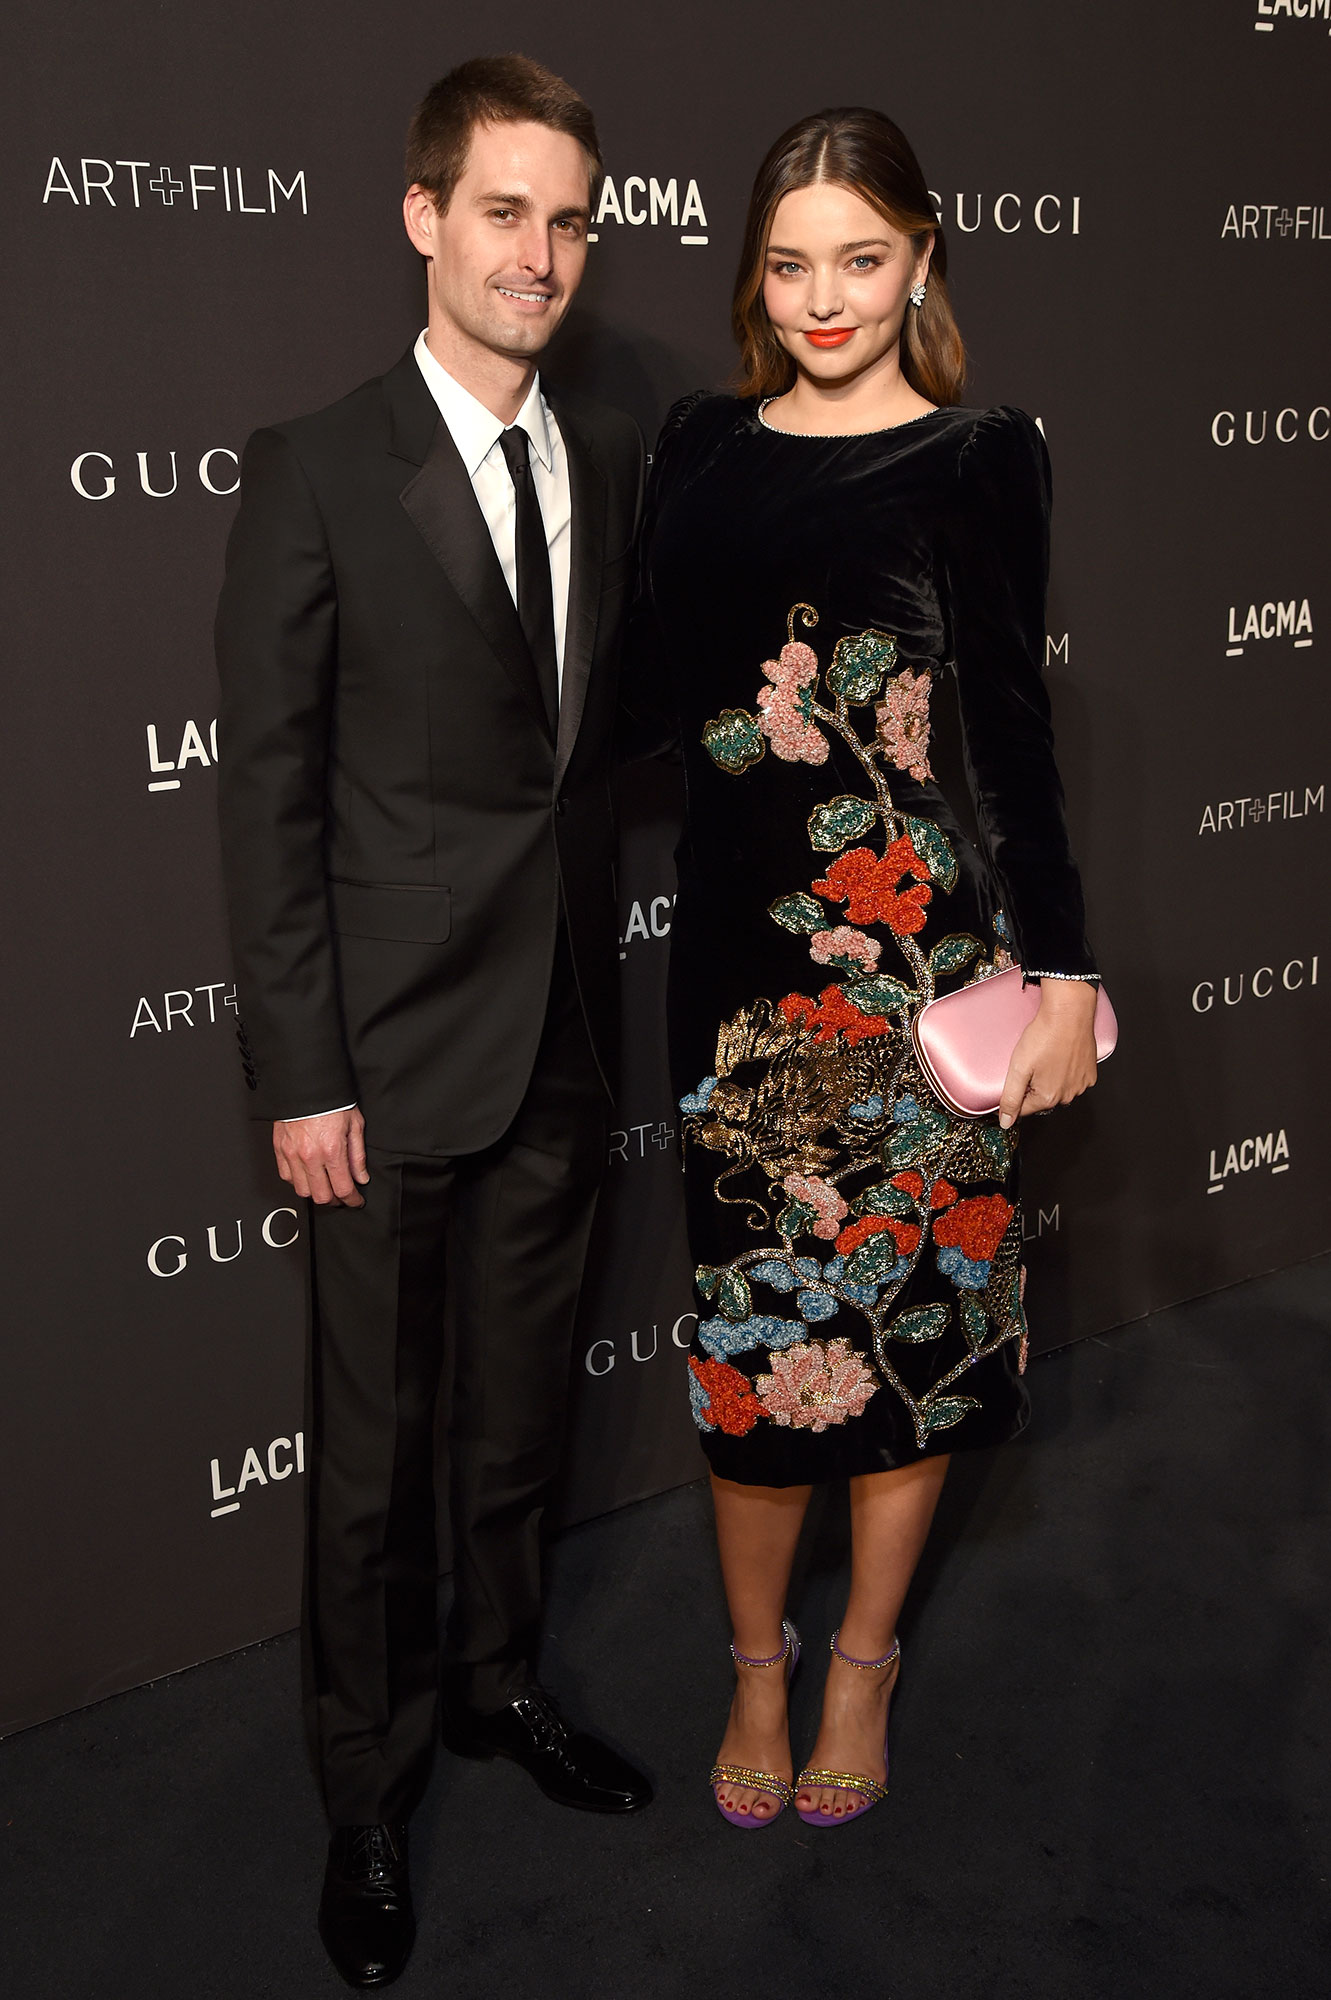 Evan Spiegel and Miranda Kerr Inside Pregnant Life Black Suit Black Dress WIth Flowers and Pink Hand Bag Purse - Evan Spiegel and Miranda Kerr attend 2018 LACMA Art + Film Gala honoring Catherine Opie and Guillermo del Toro presented by Gucci at LACMA on November 3, 2018 in Los Angeles, California.